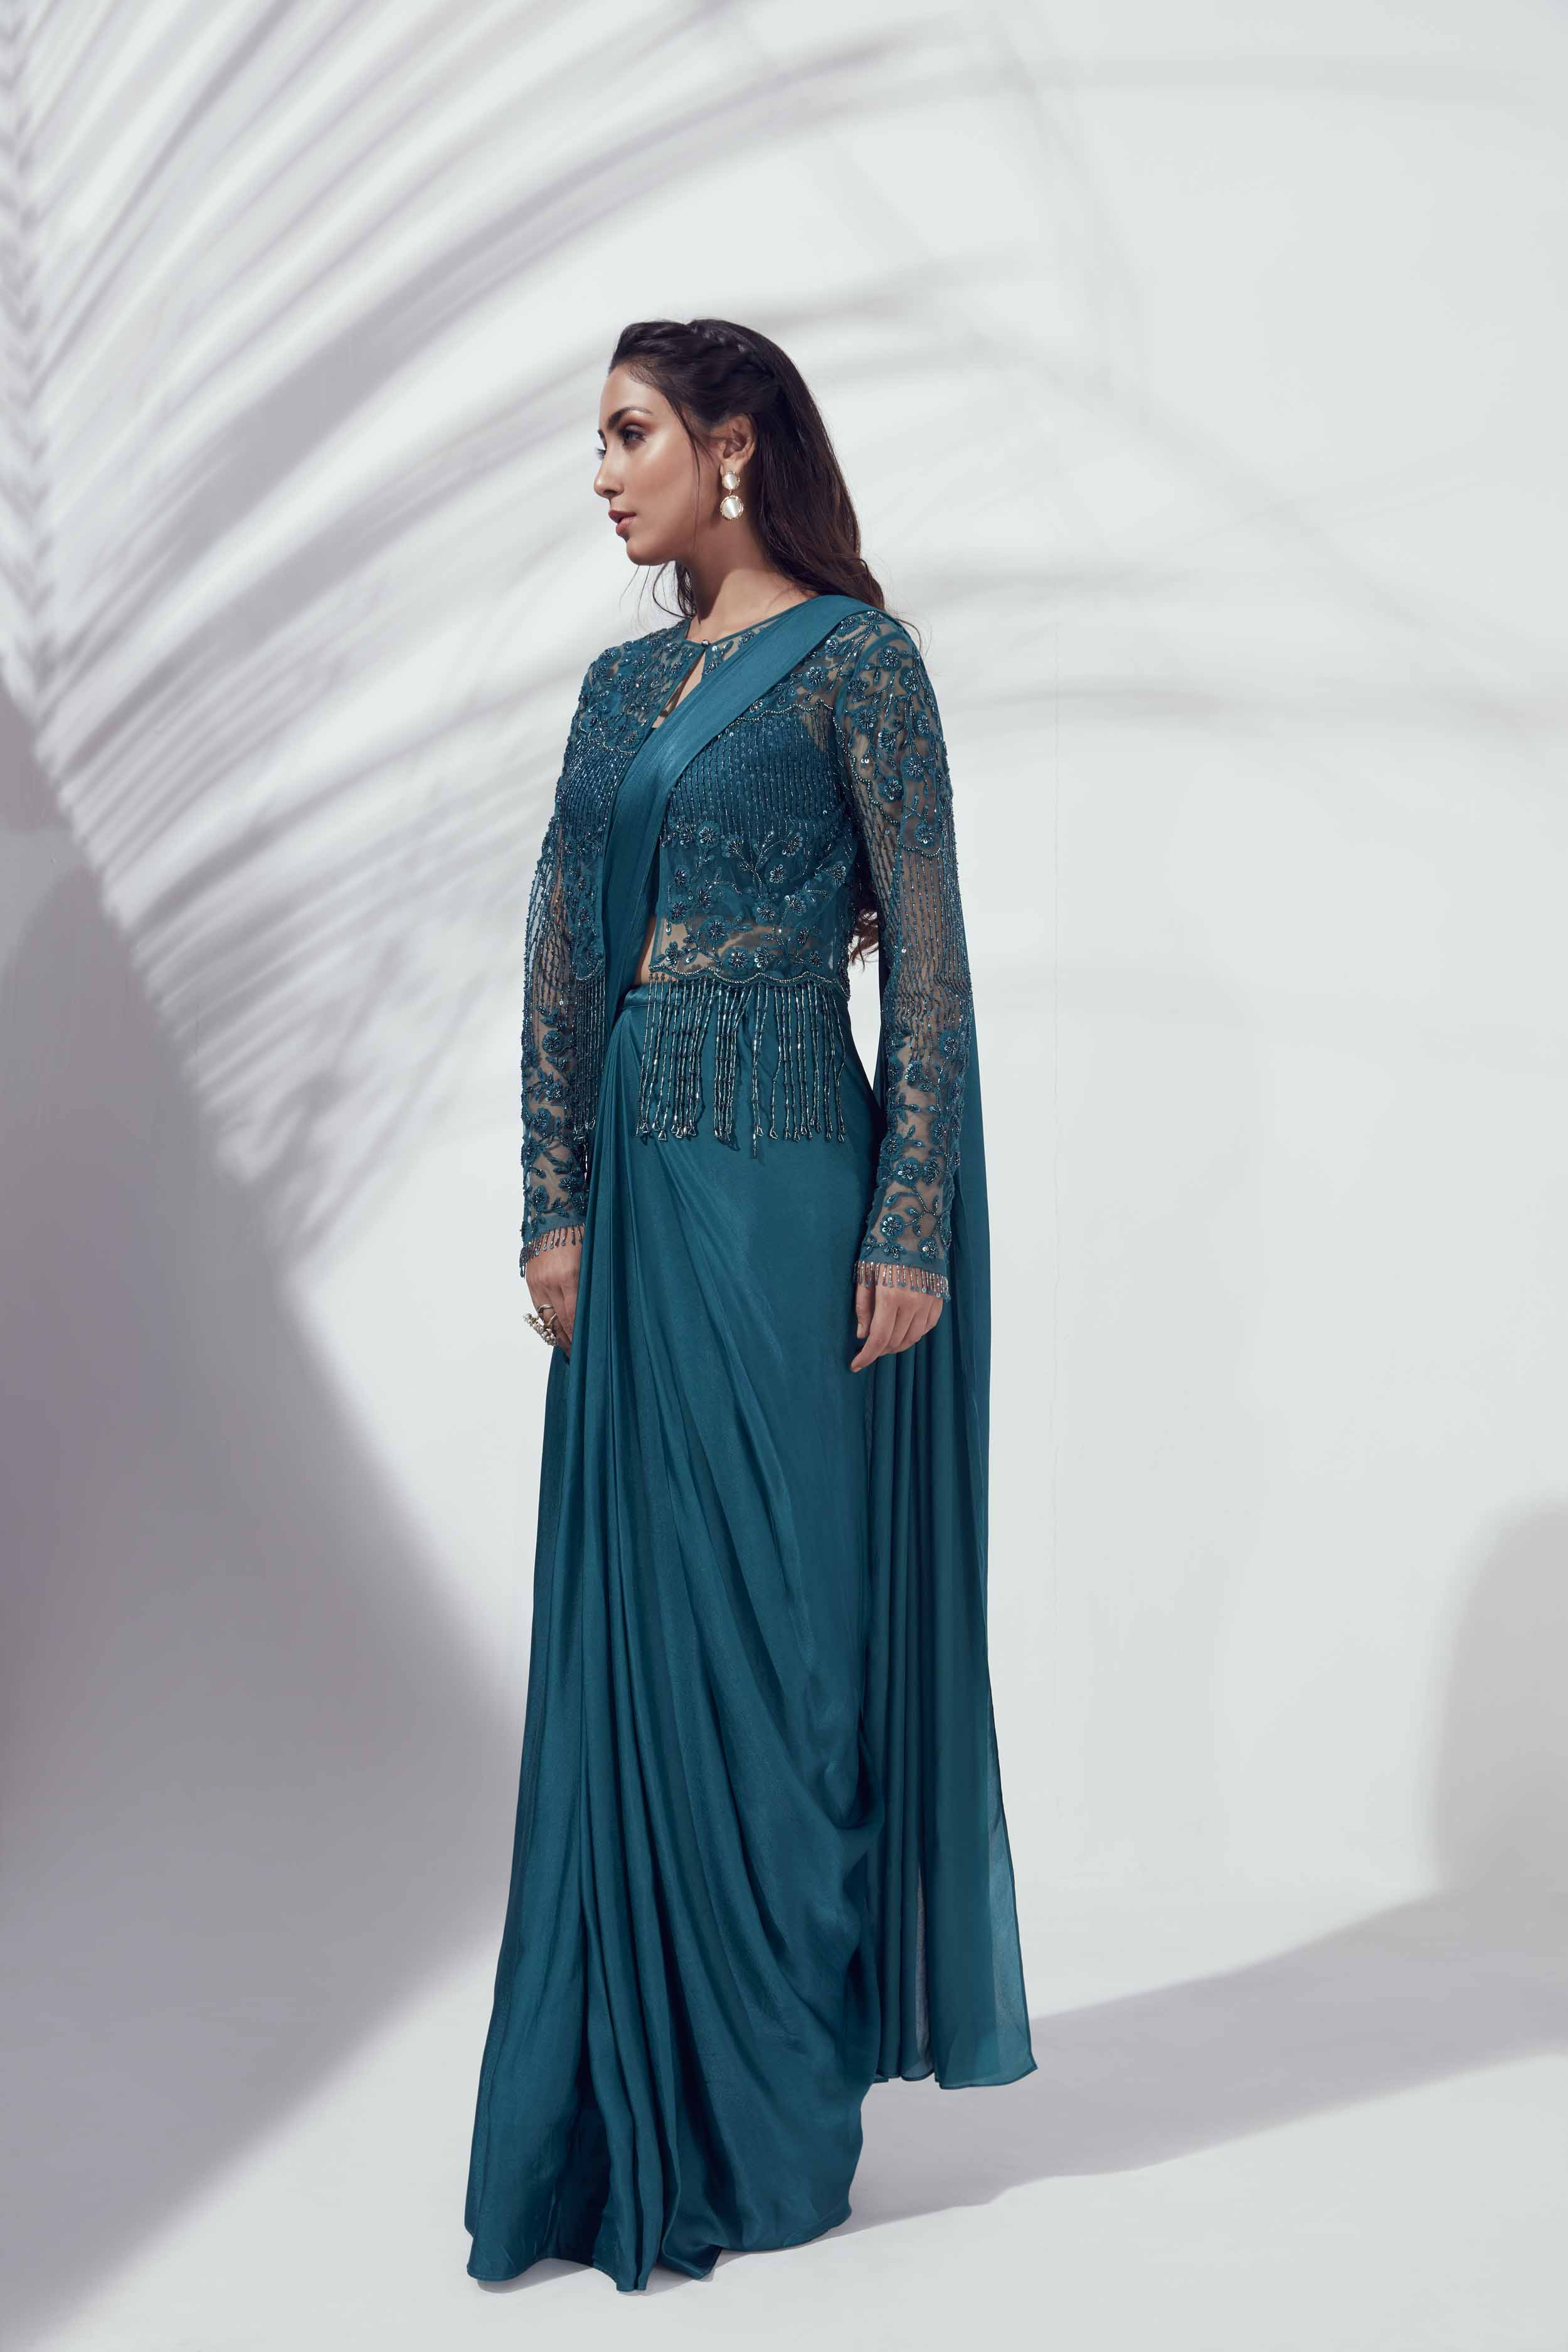 Teal pre draped saree